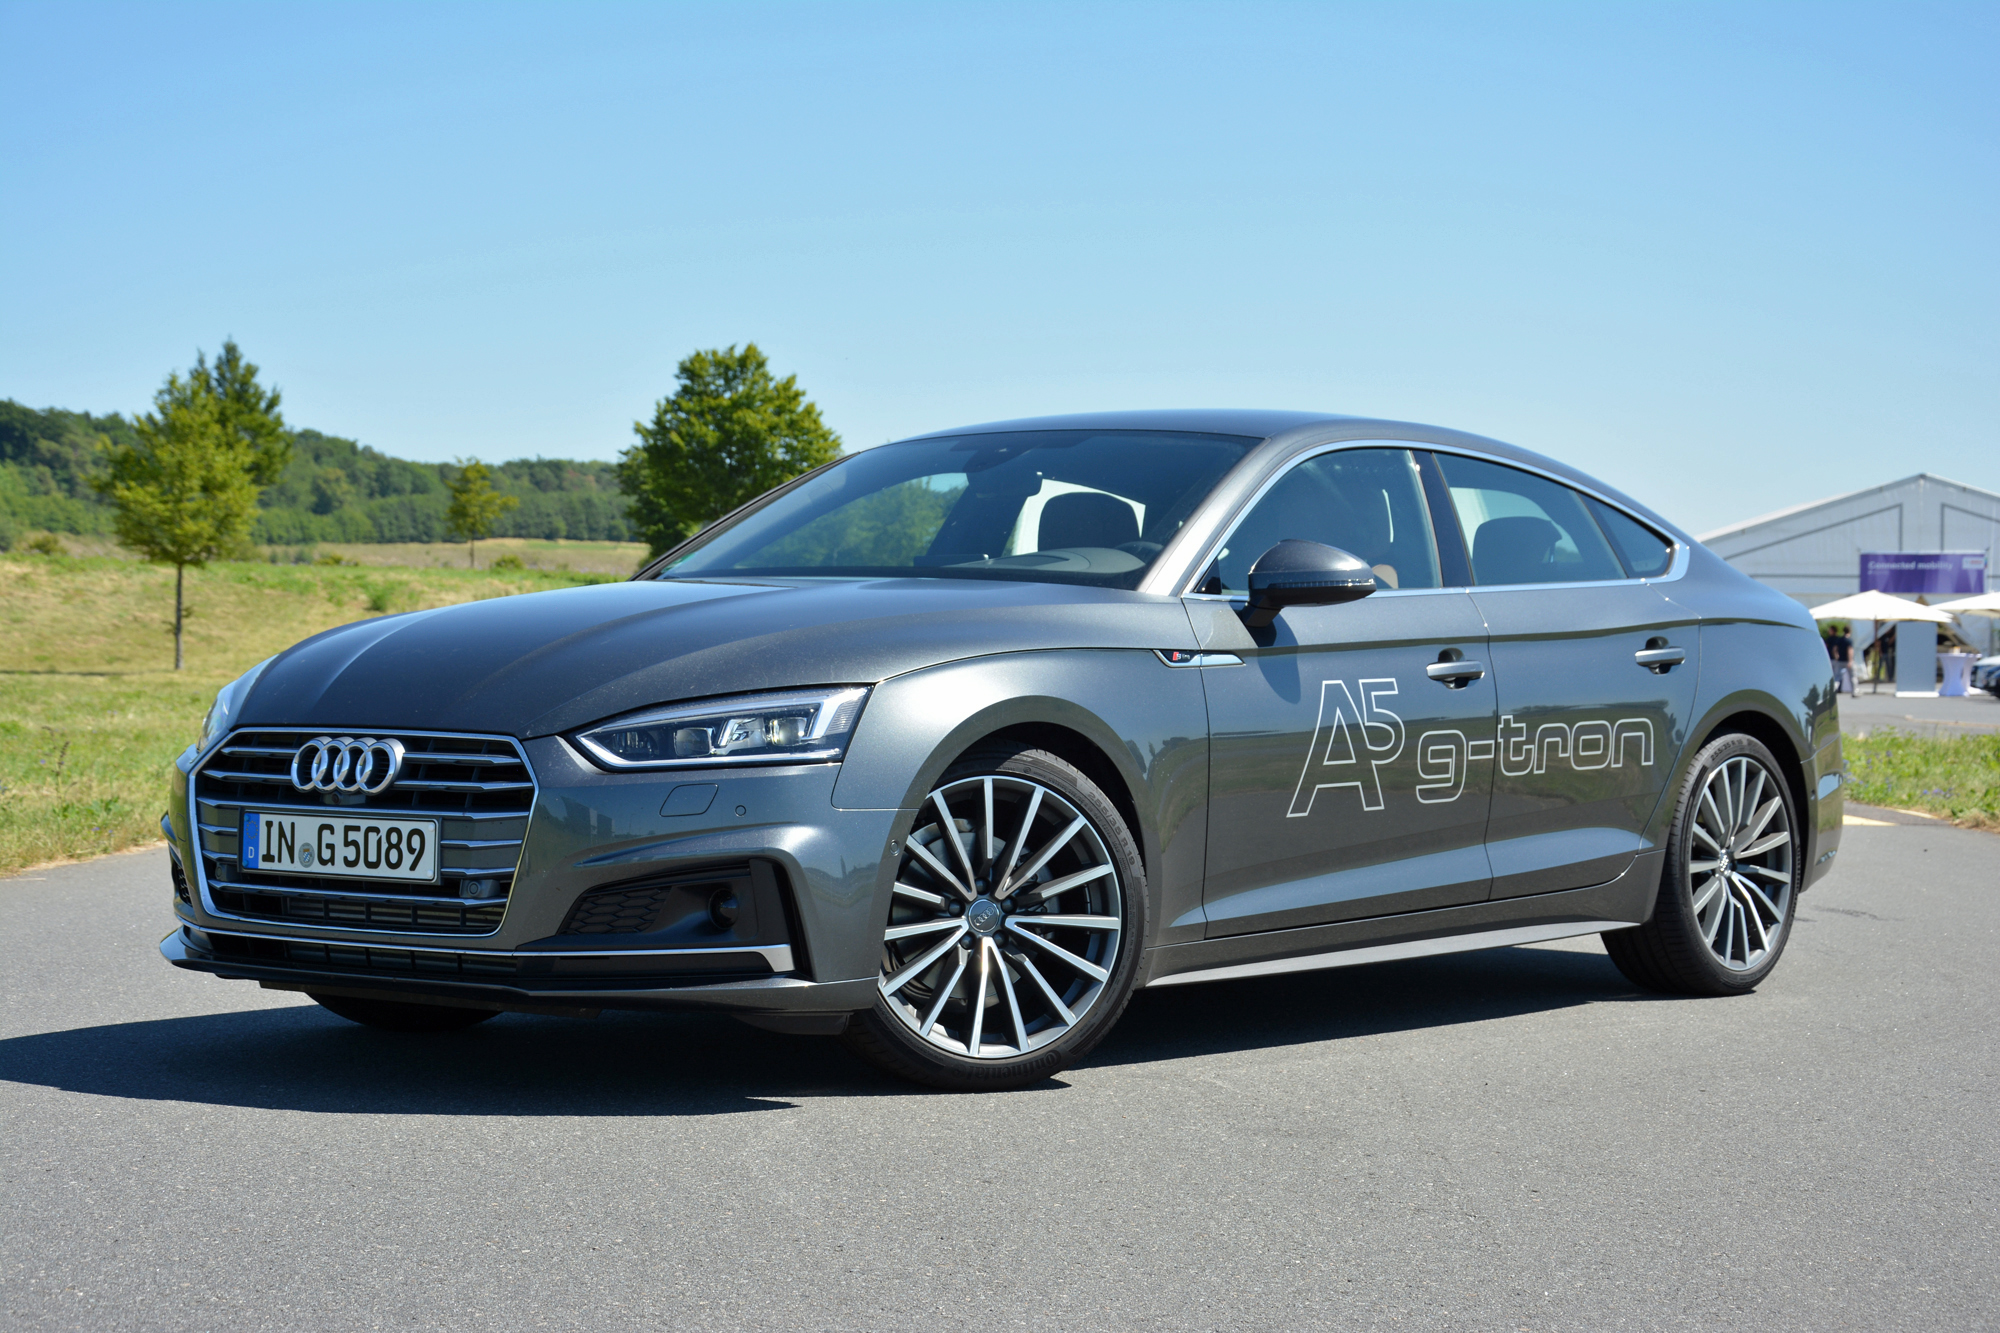 Audi A5 Sportback G-tron: First Drive Of Natural-gas